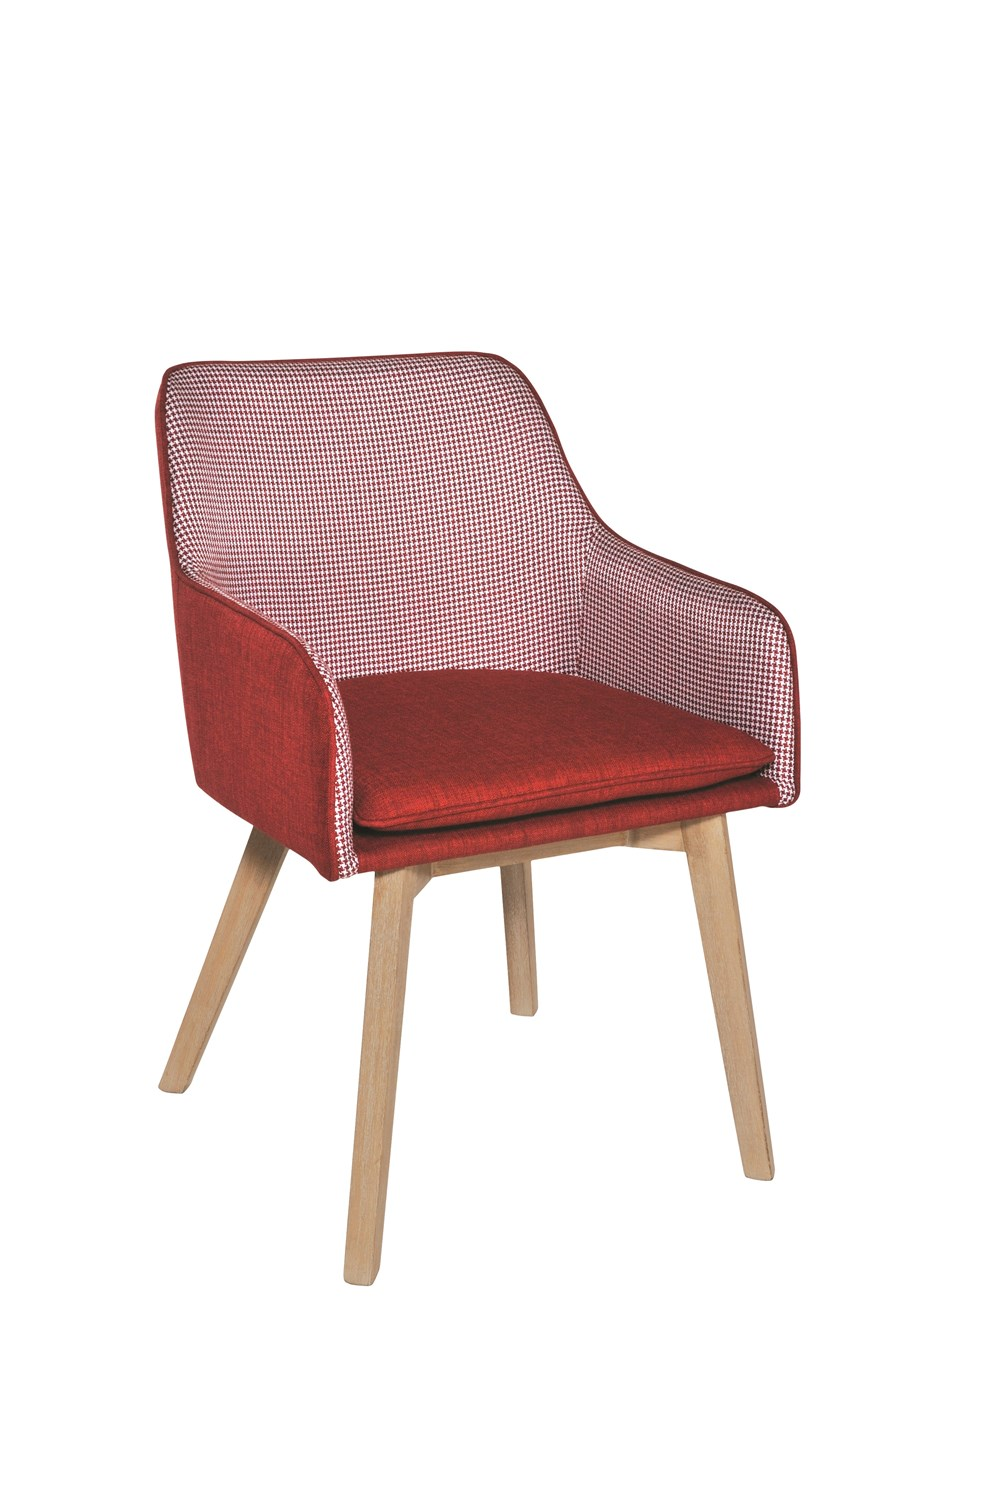 LOUISE Dining Chair in Red Houndstooth with Natural Legs